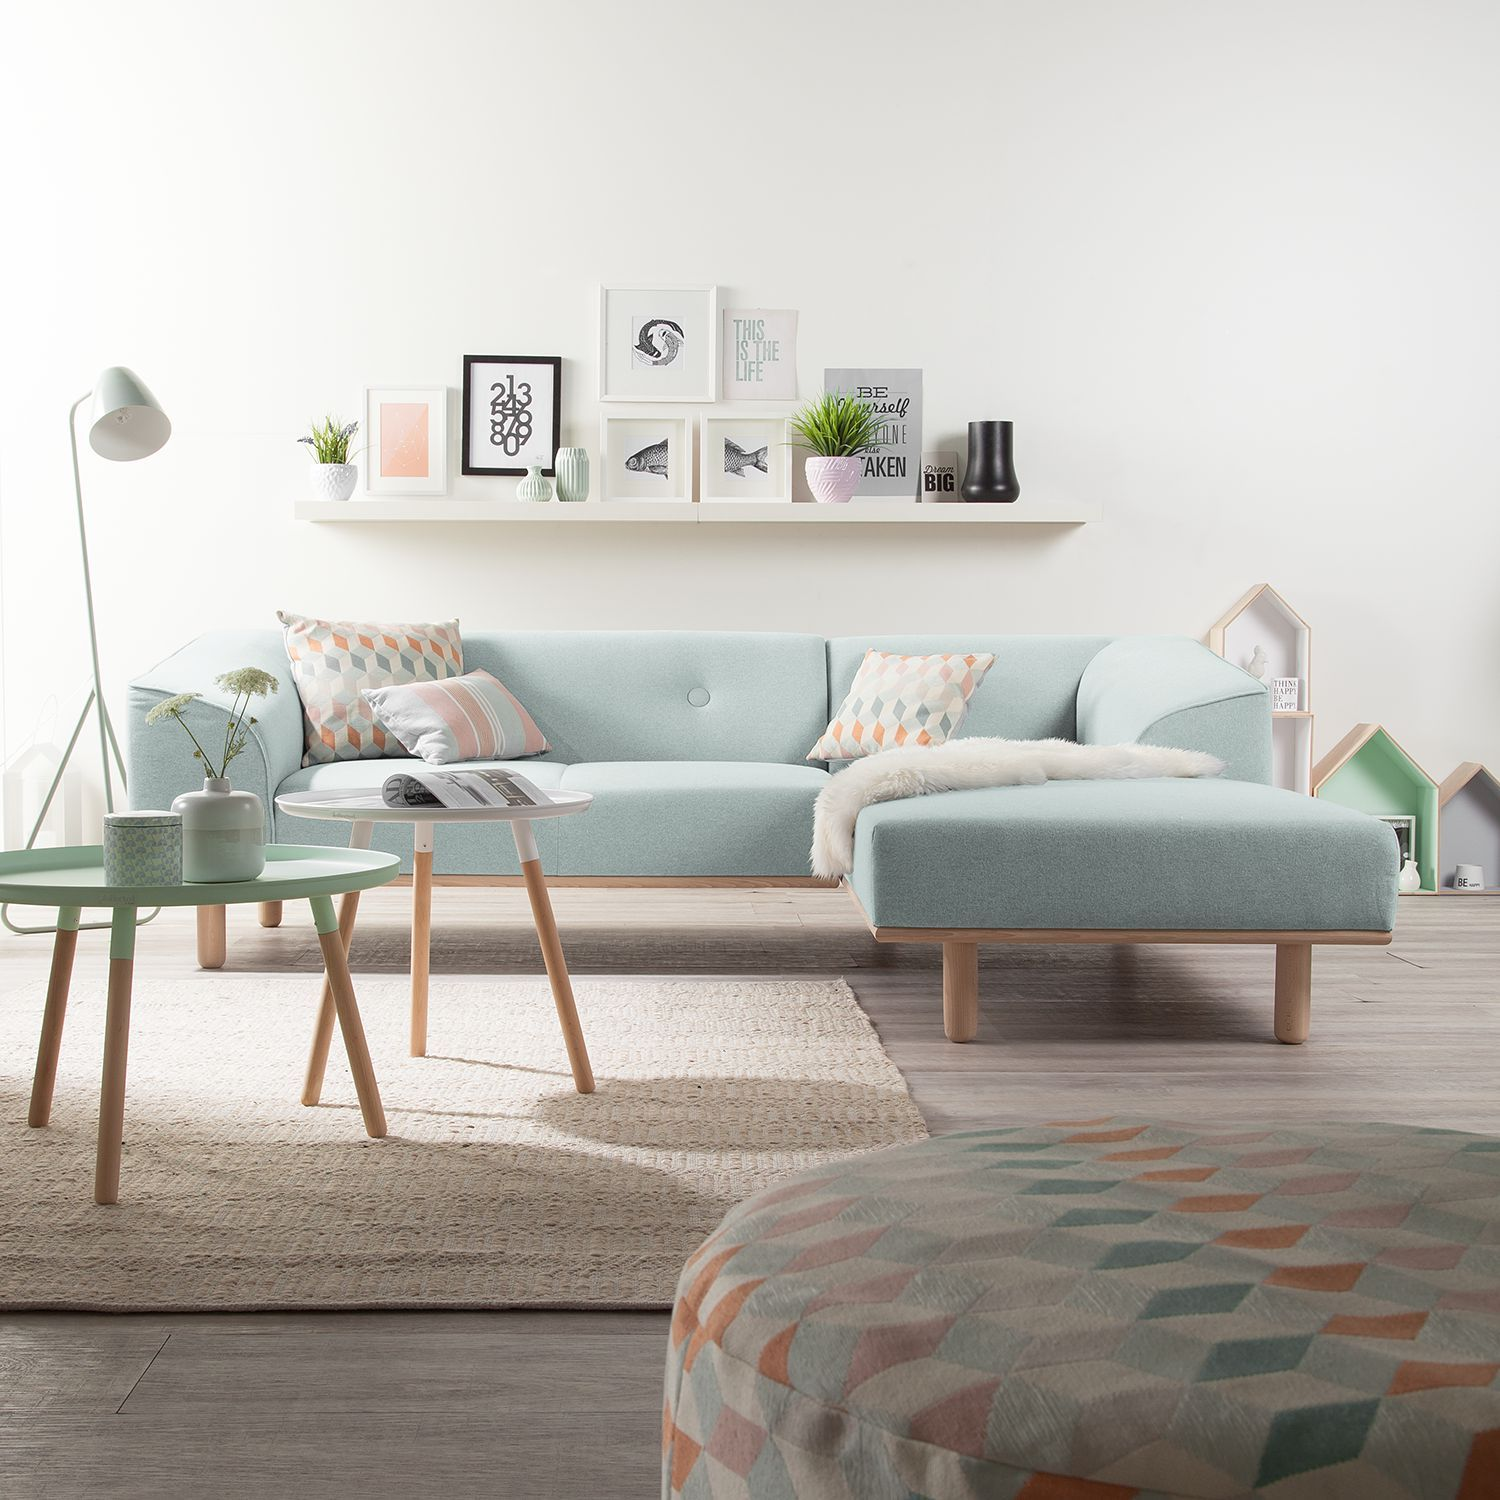 Wohnzimmer Couch Anthrazit Ecksofa Aya Webstoff H O M E Pastel Living Room Living Room